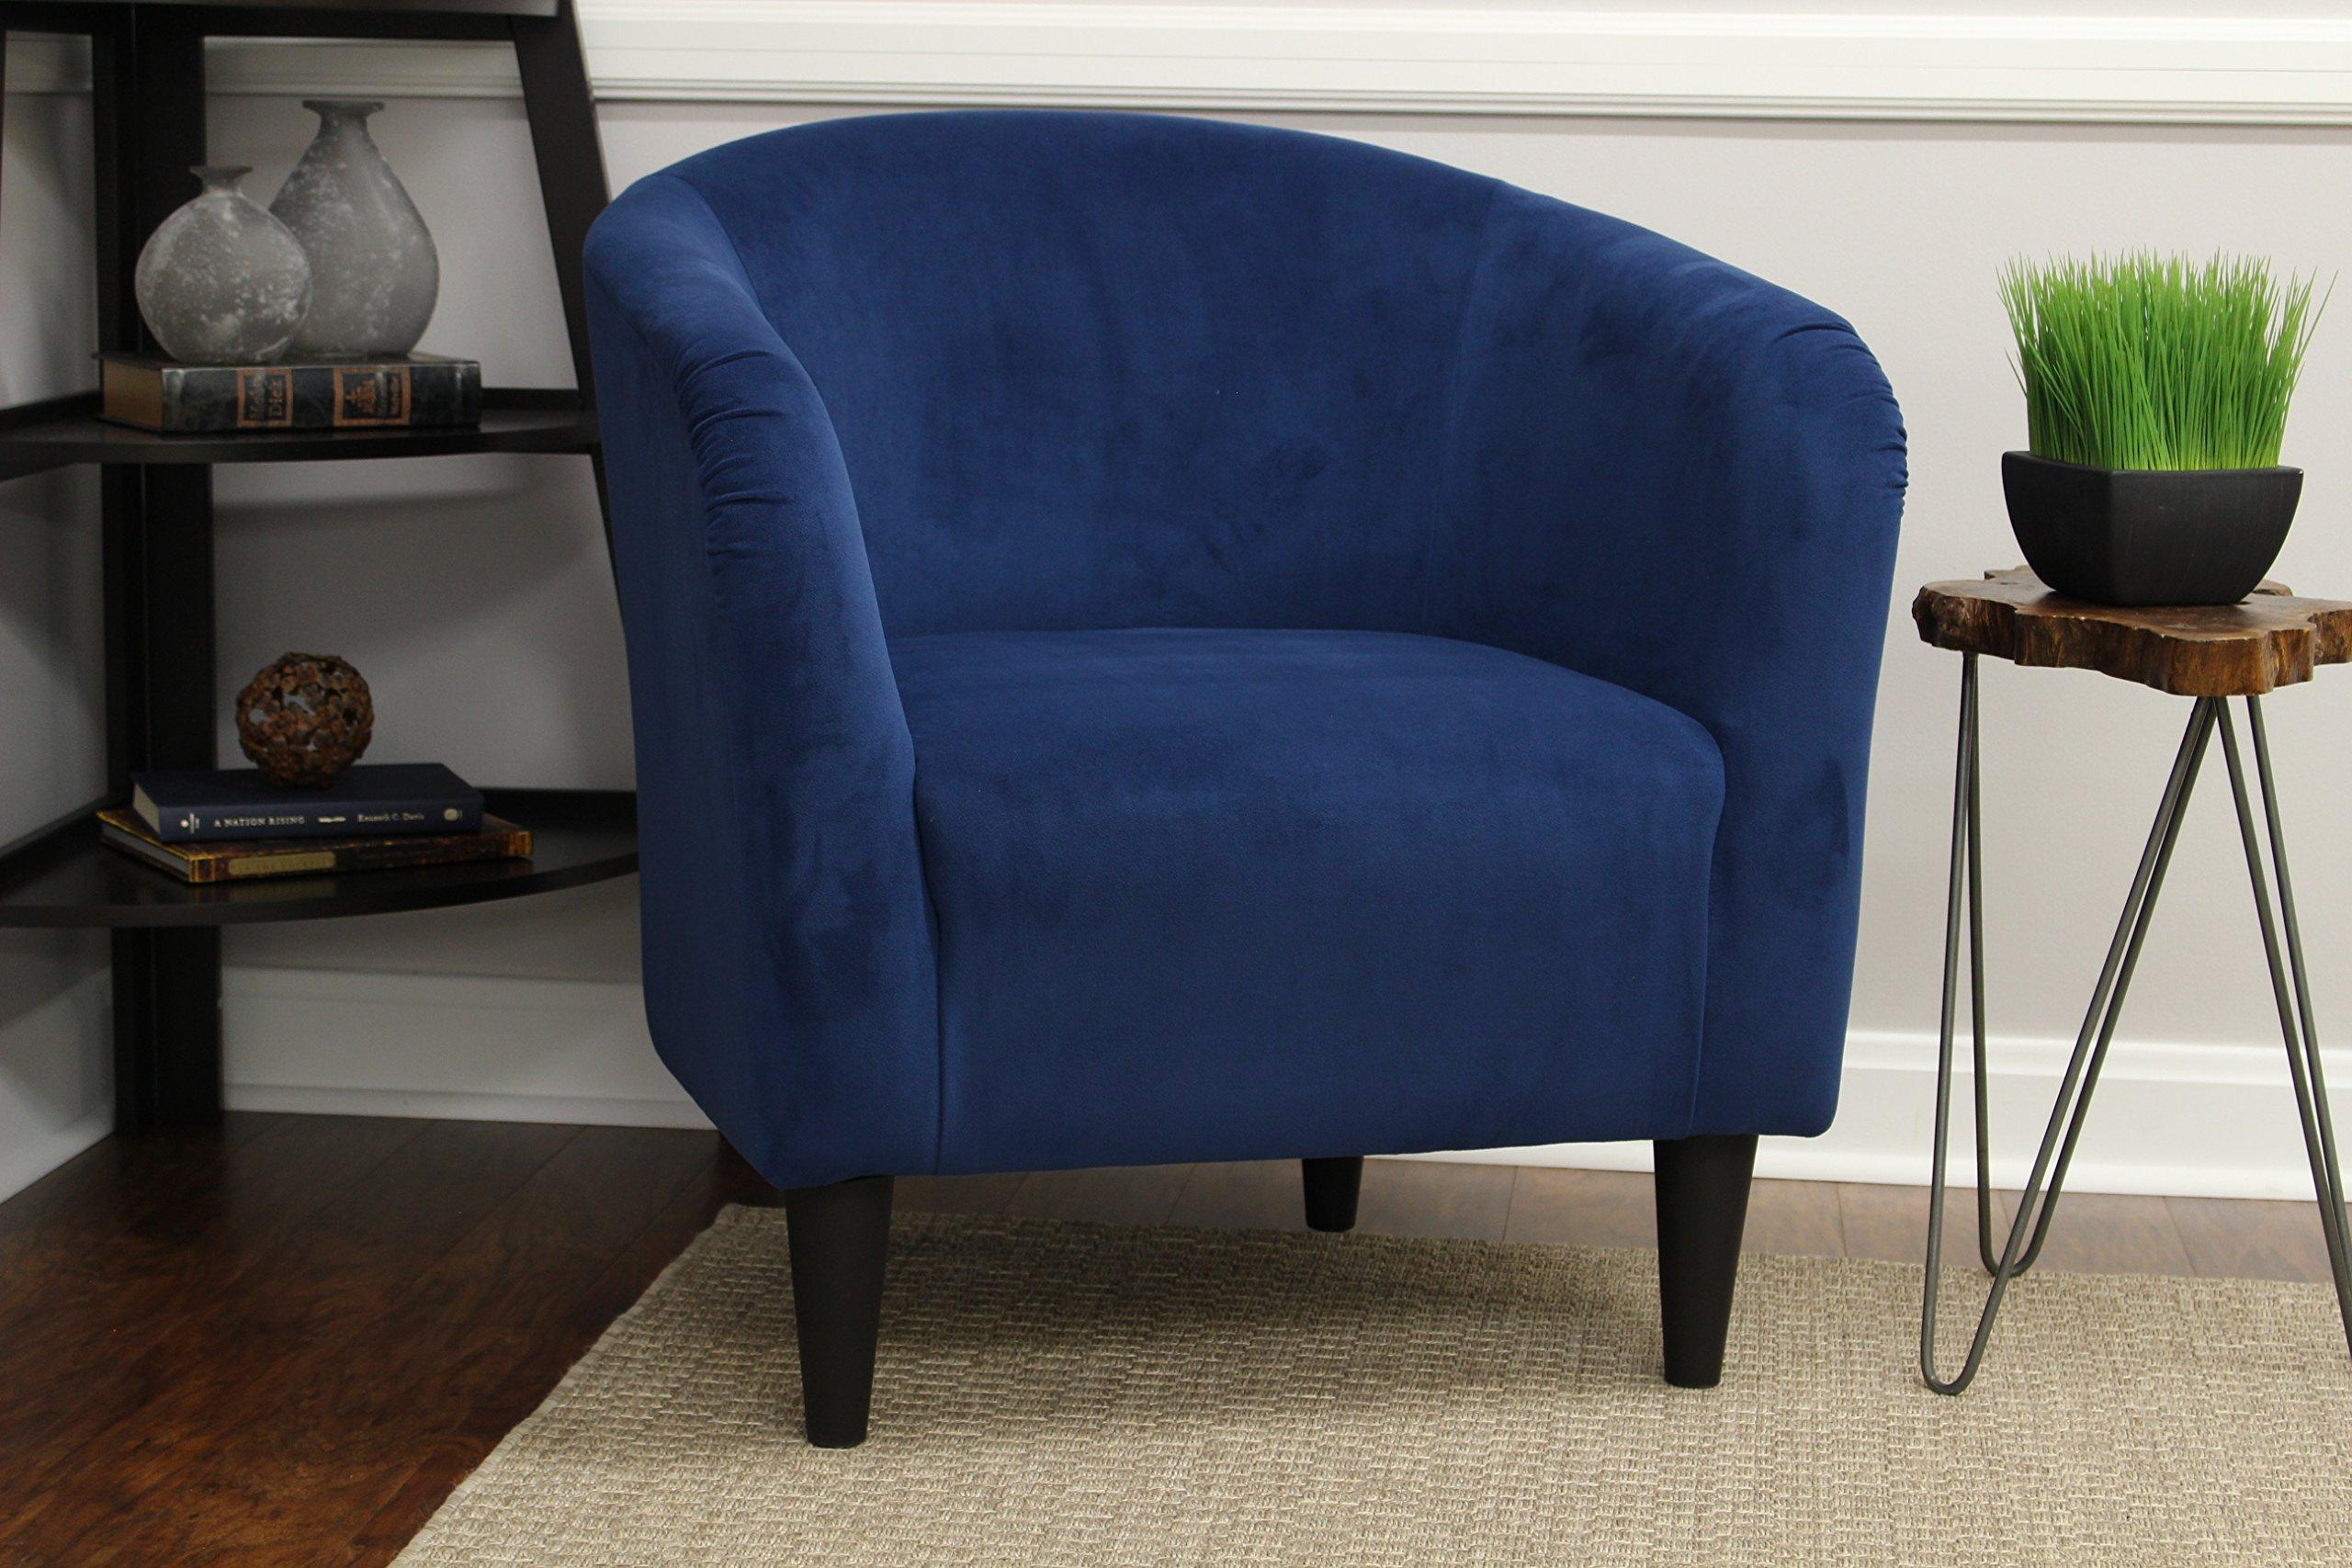 Mainstays Microfiber Tub Accent Chair (Navy Blue) by Mainstay (Image #1)